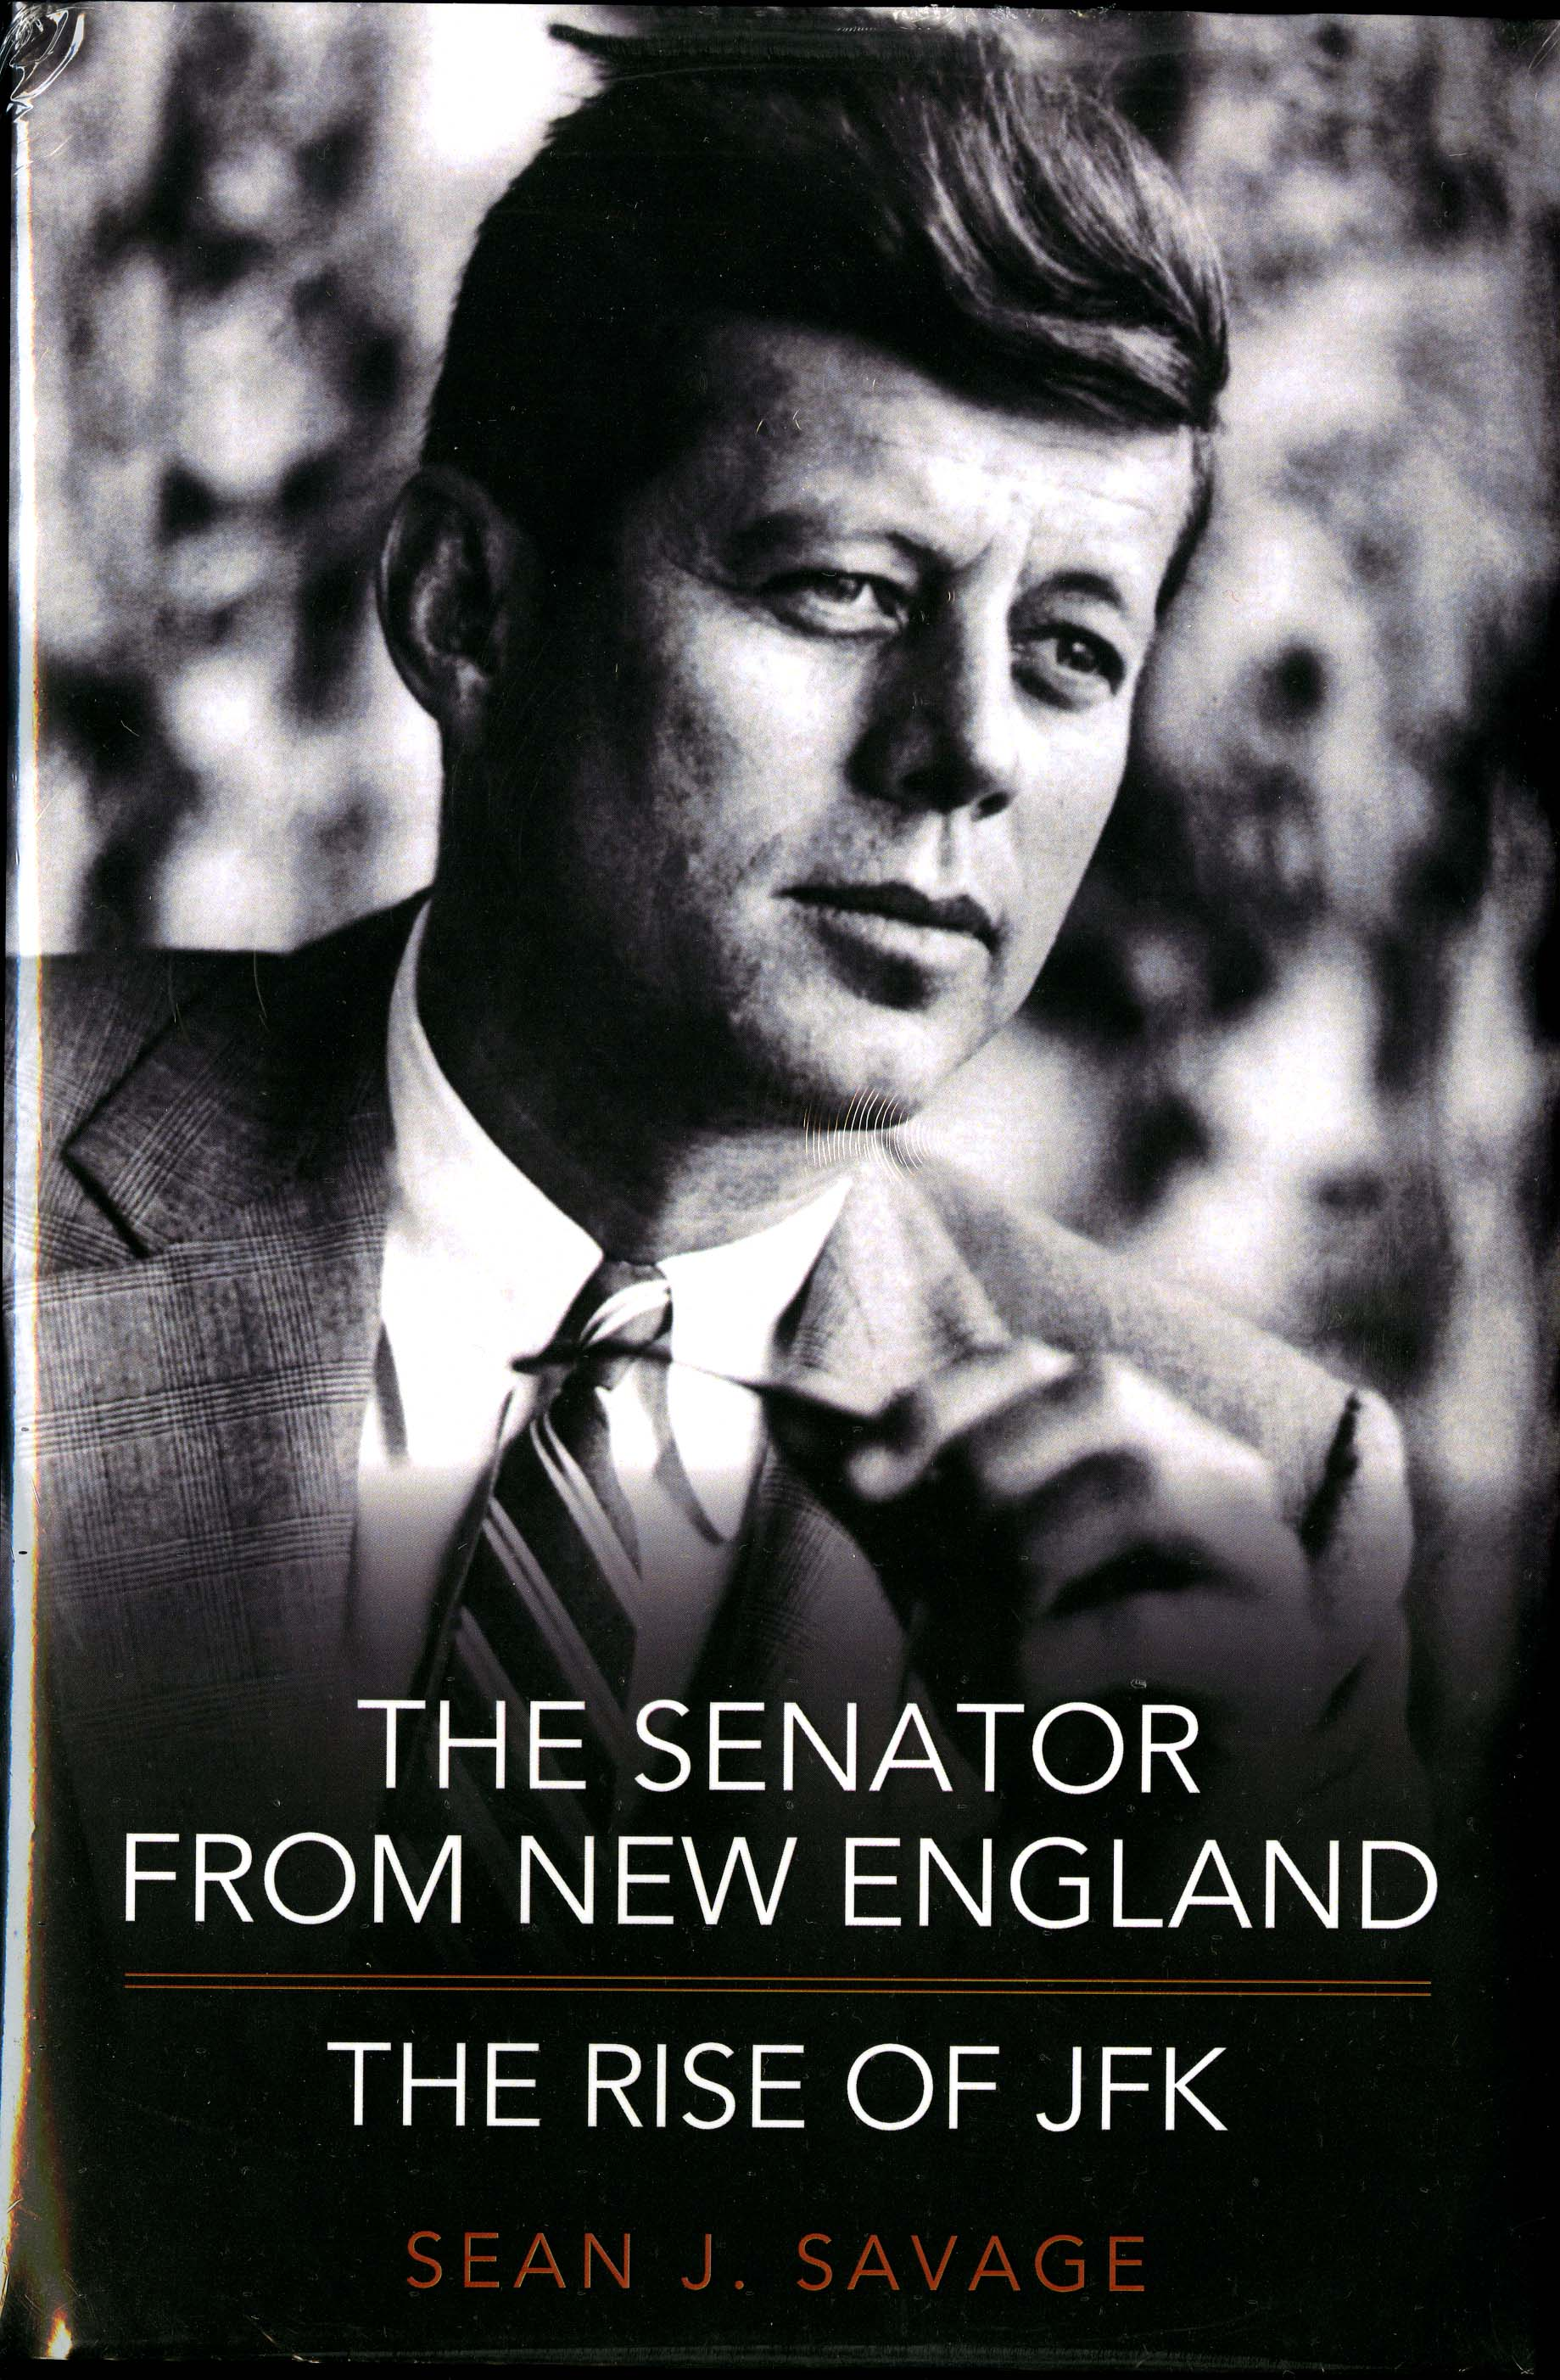 The Senator from New England